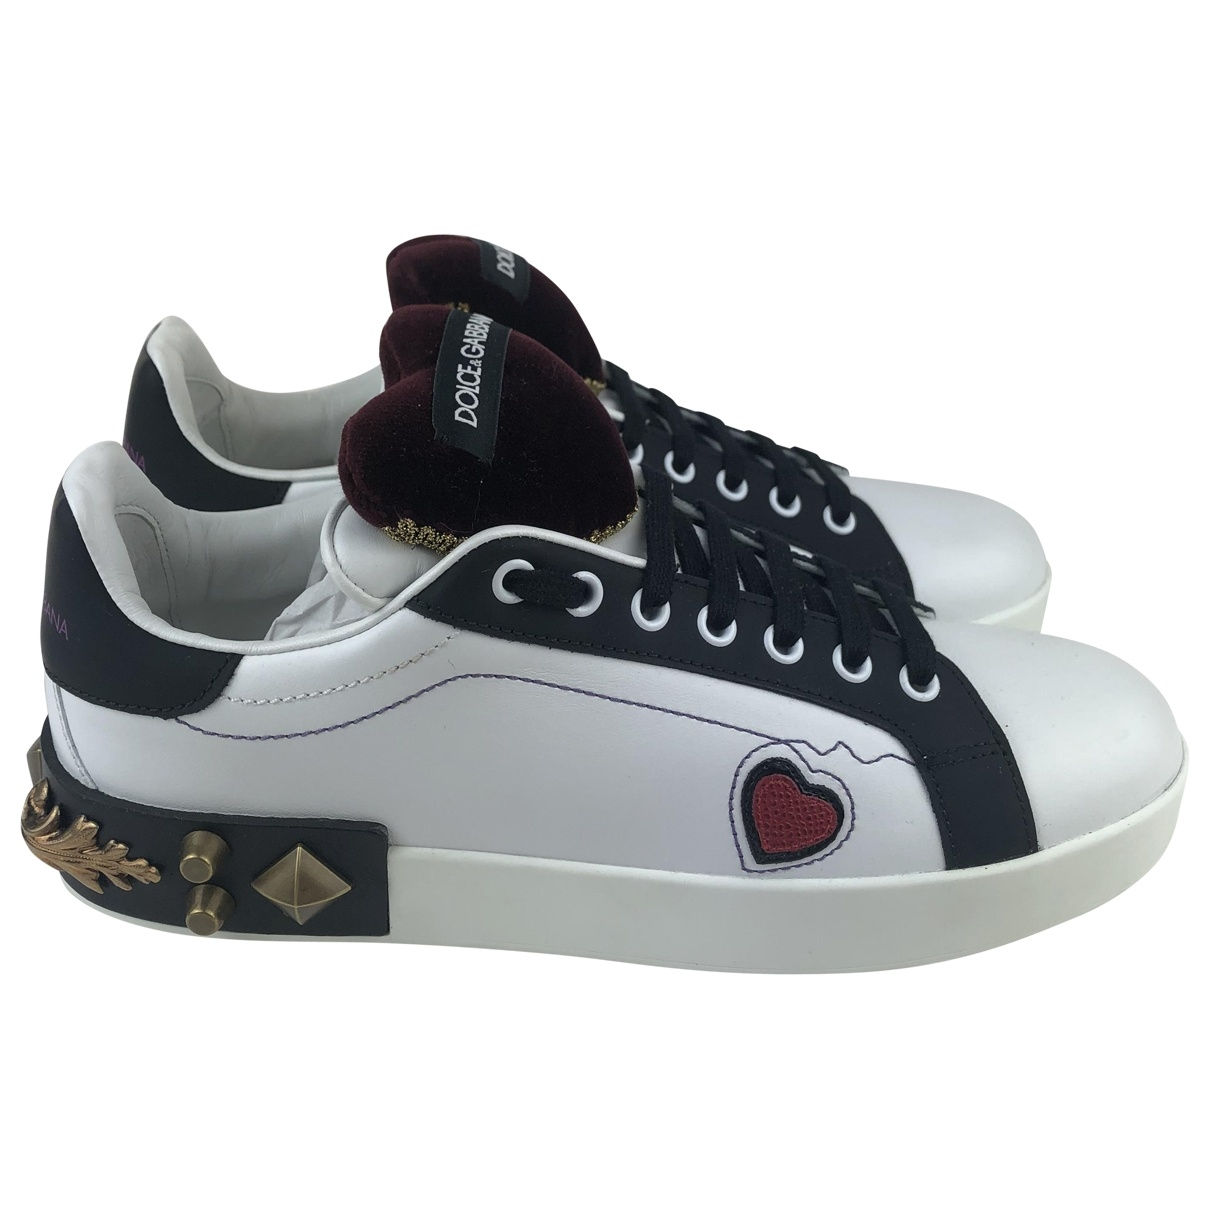 Dolce & Gabbana \N White Leather Trainers for Women 41 EU